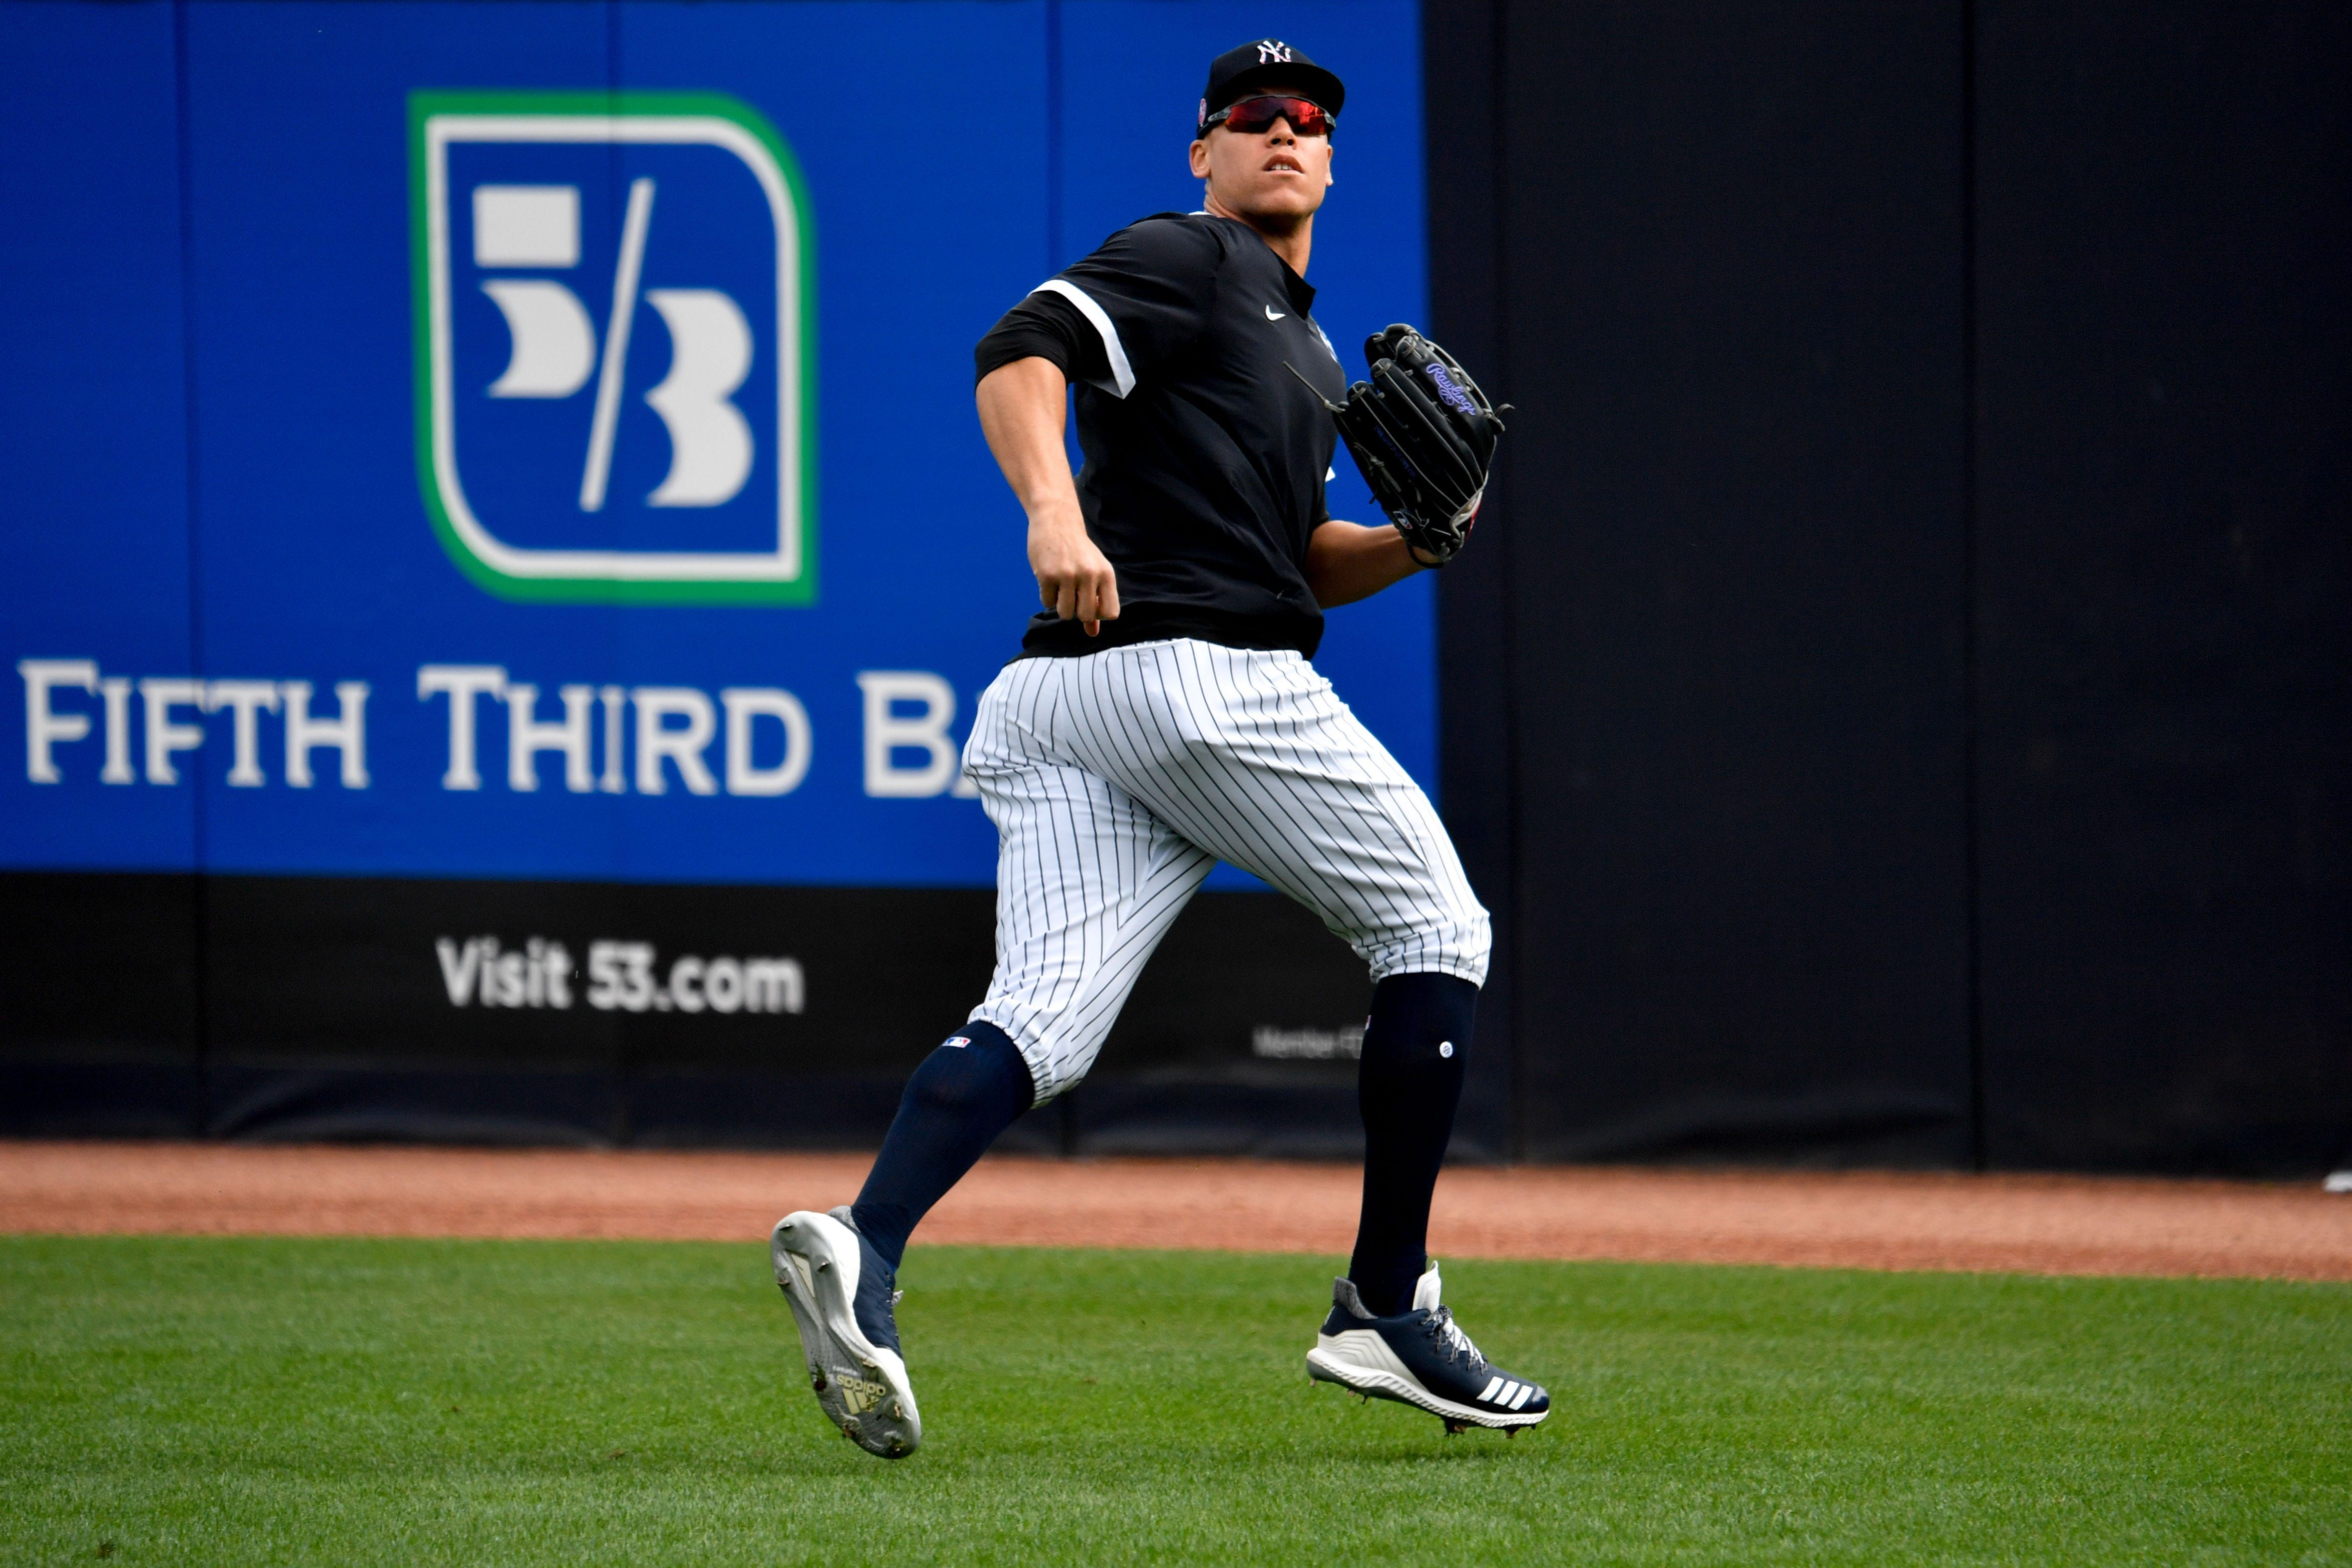 Mlb Considering Radical Realignment For 2020 Season Grapefruit And Cactus Leagues Usa Today Sports New York Yankees New York Mets